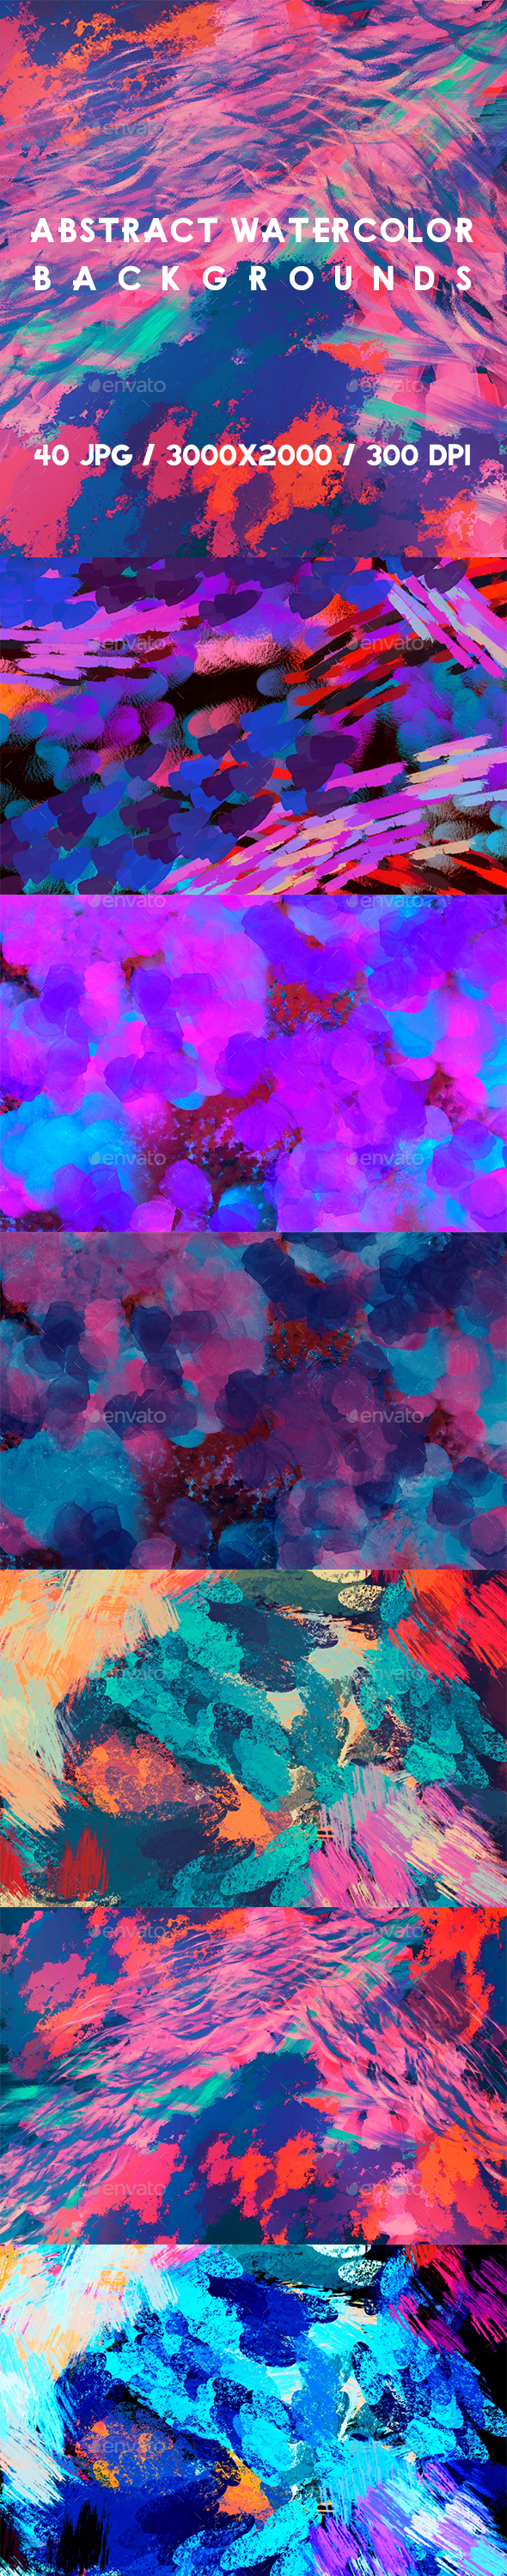 40 Abstract Watercolors Backgrounds - Abstract Backgrounds